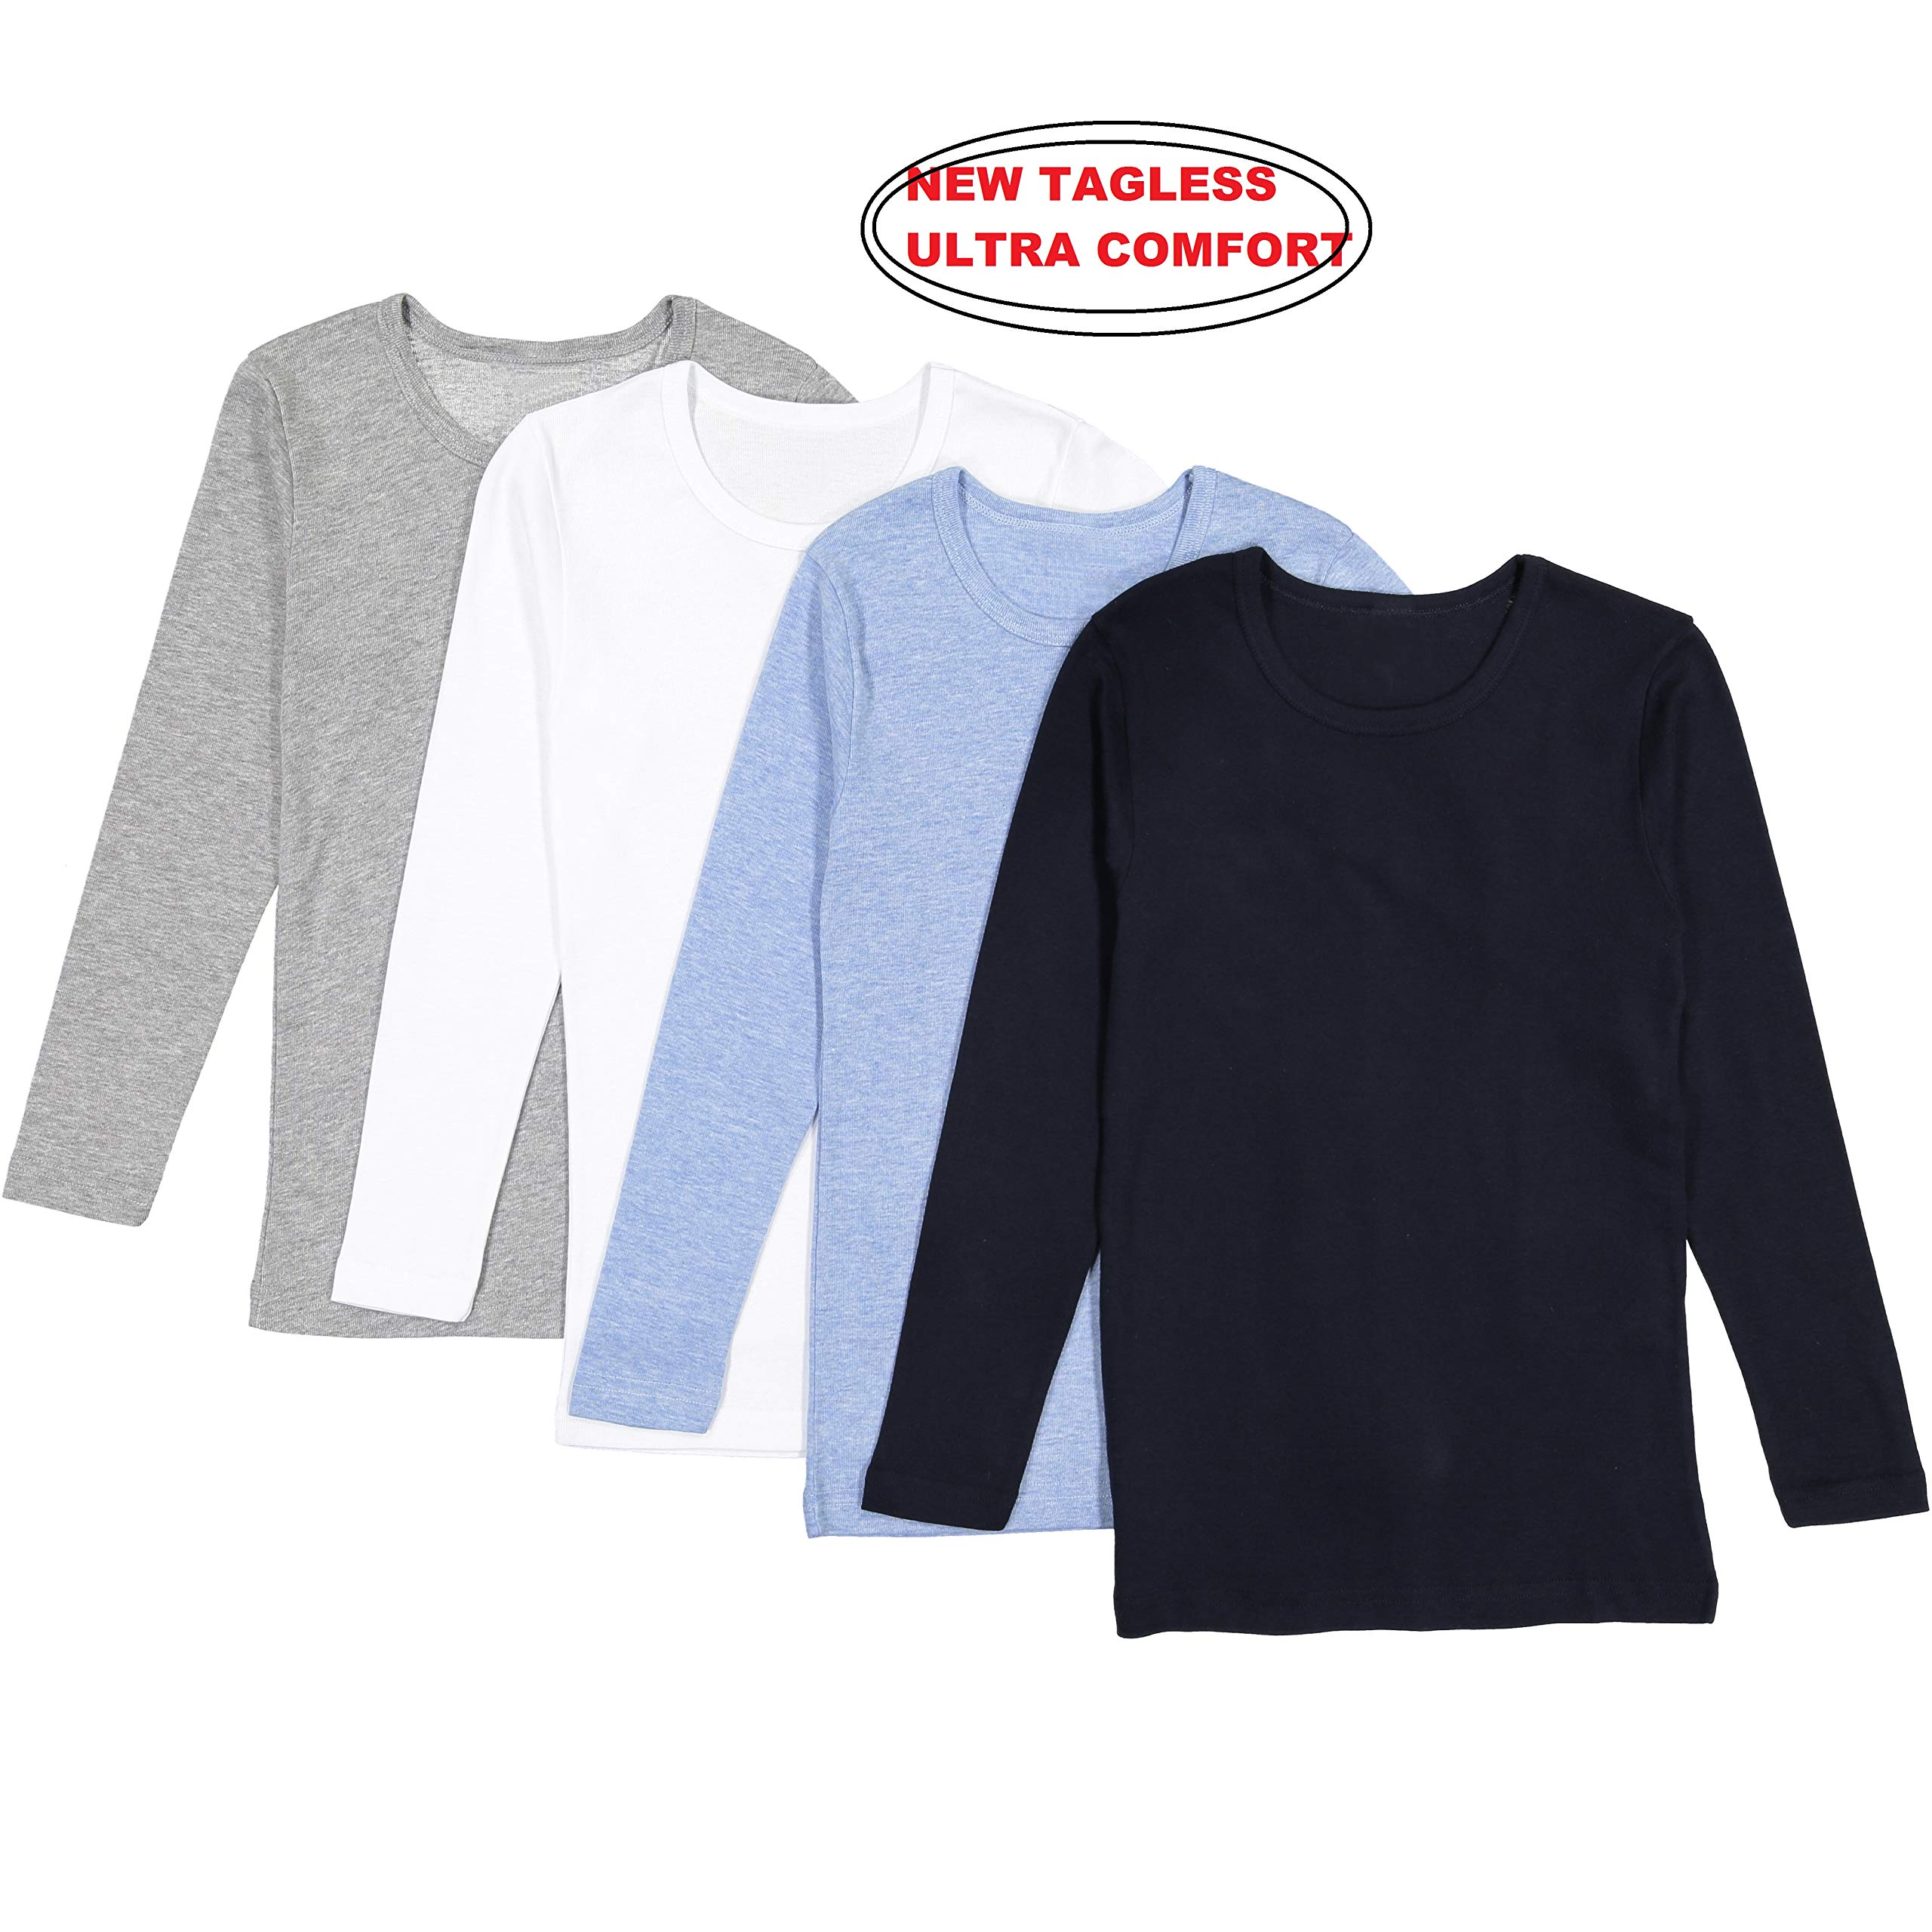 36573c760f931 Brix Boys  Long Sleeve Tees - - TiendaMIA.com